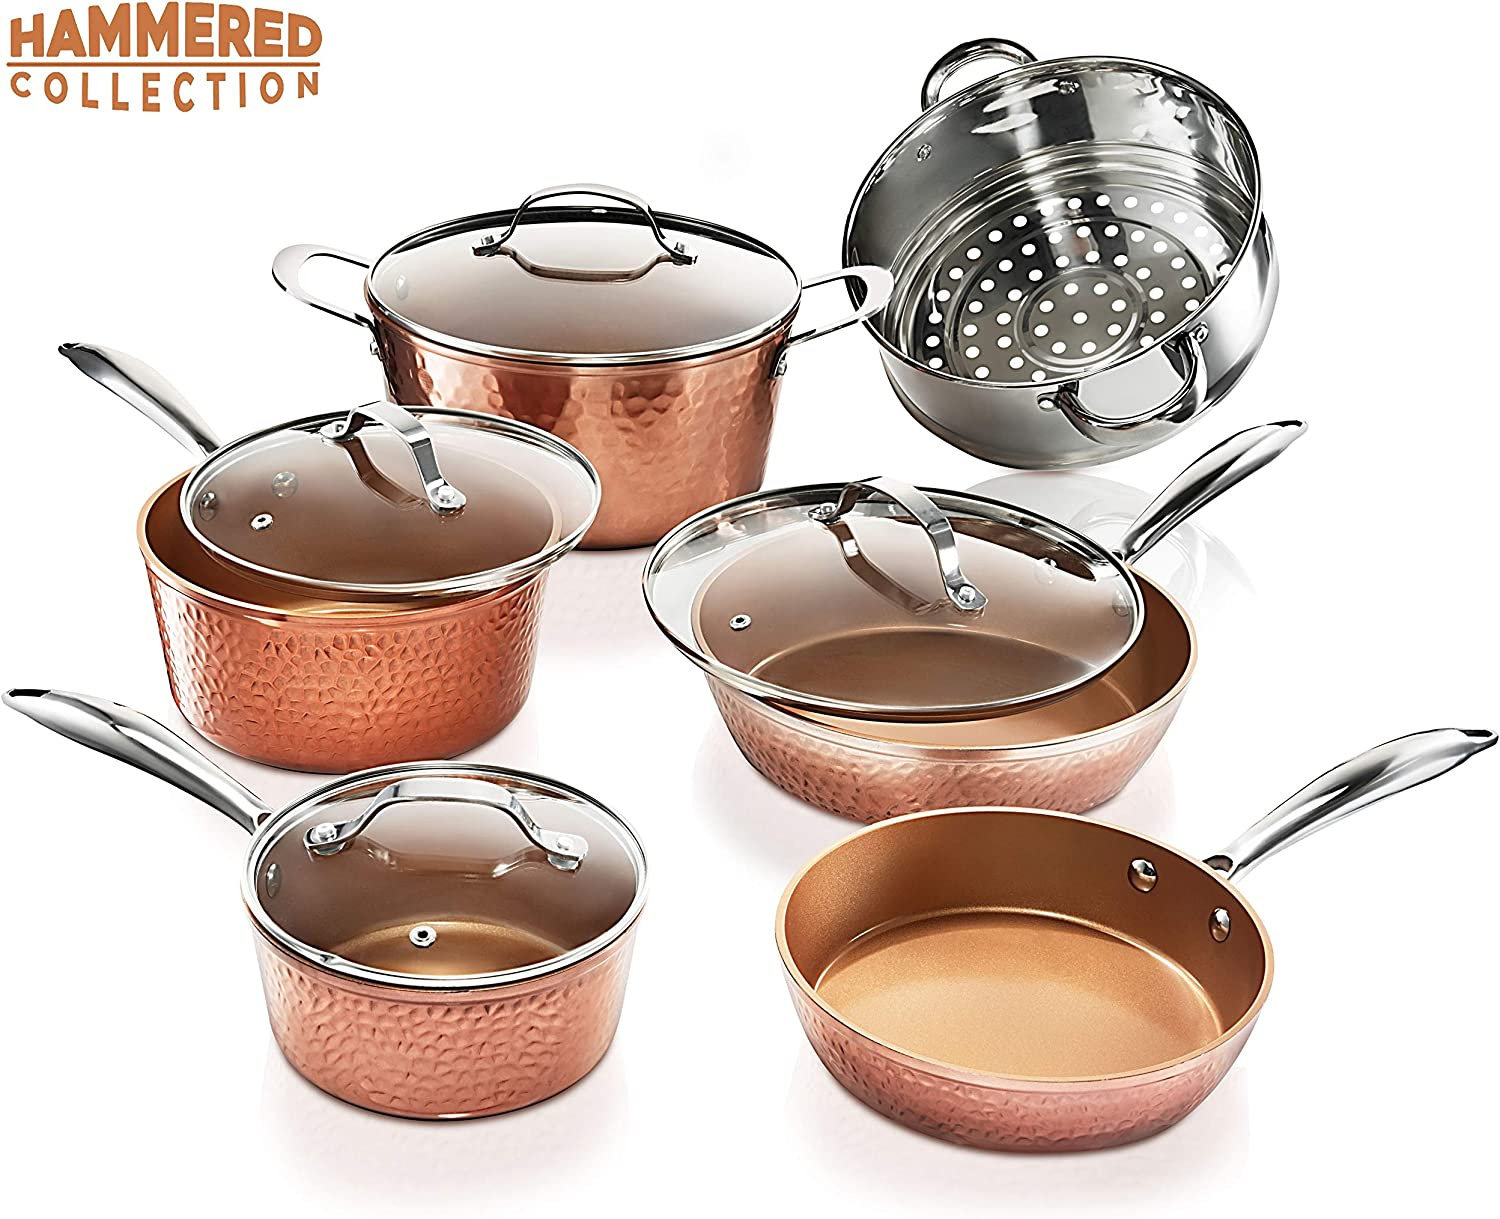 Gotham Steel 10 Piece Premium Ceramic Cookware Set with Triple Coated Ultra Nonstick Surface